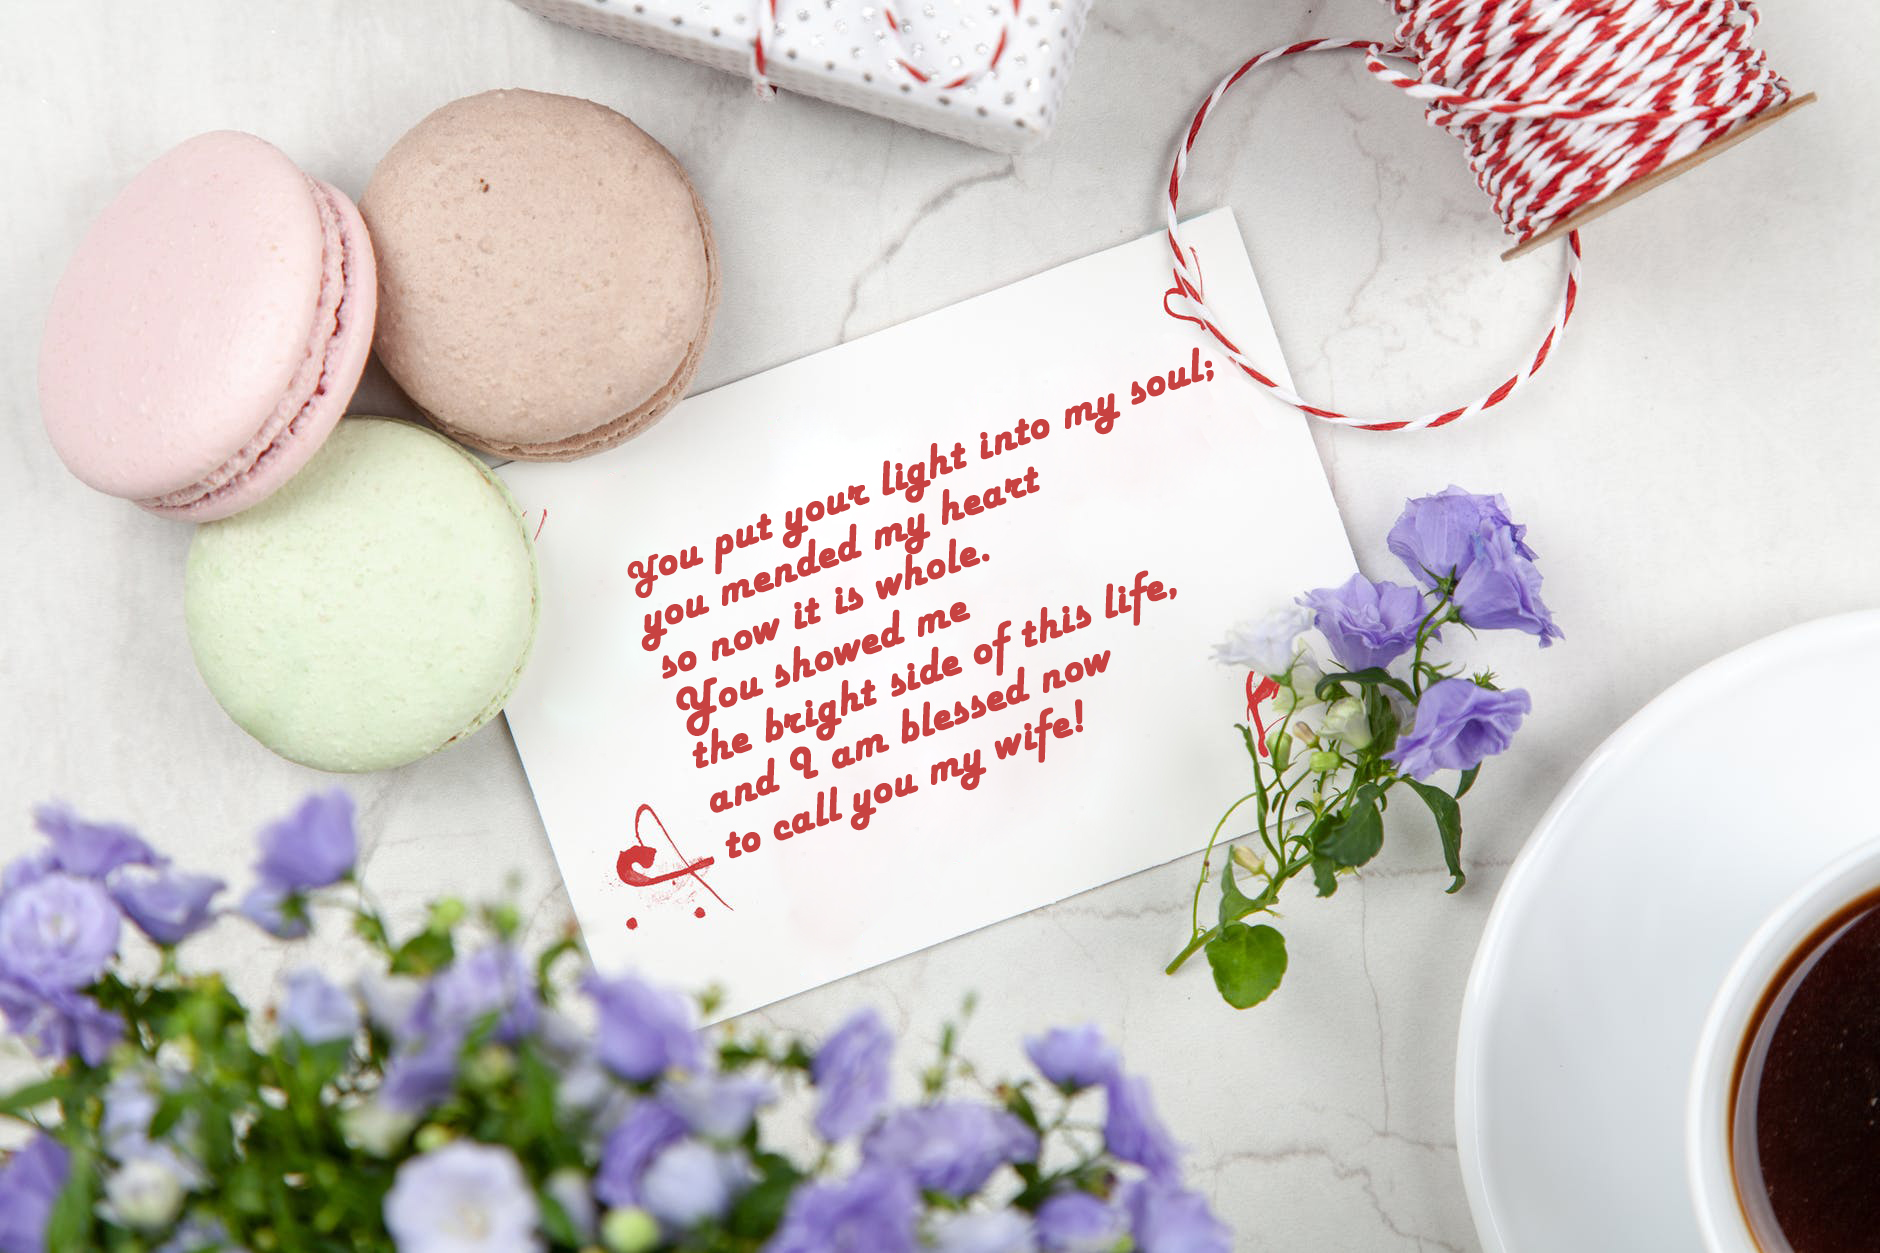 Sweet Love Messages To Make Her Smile Legit Ng